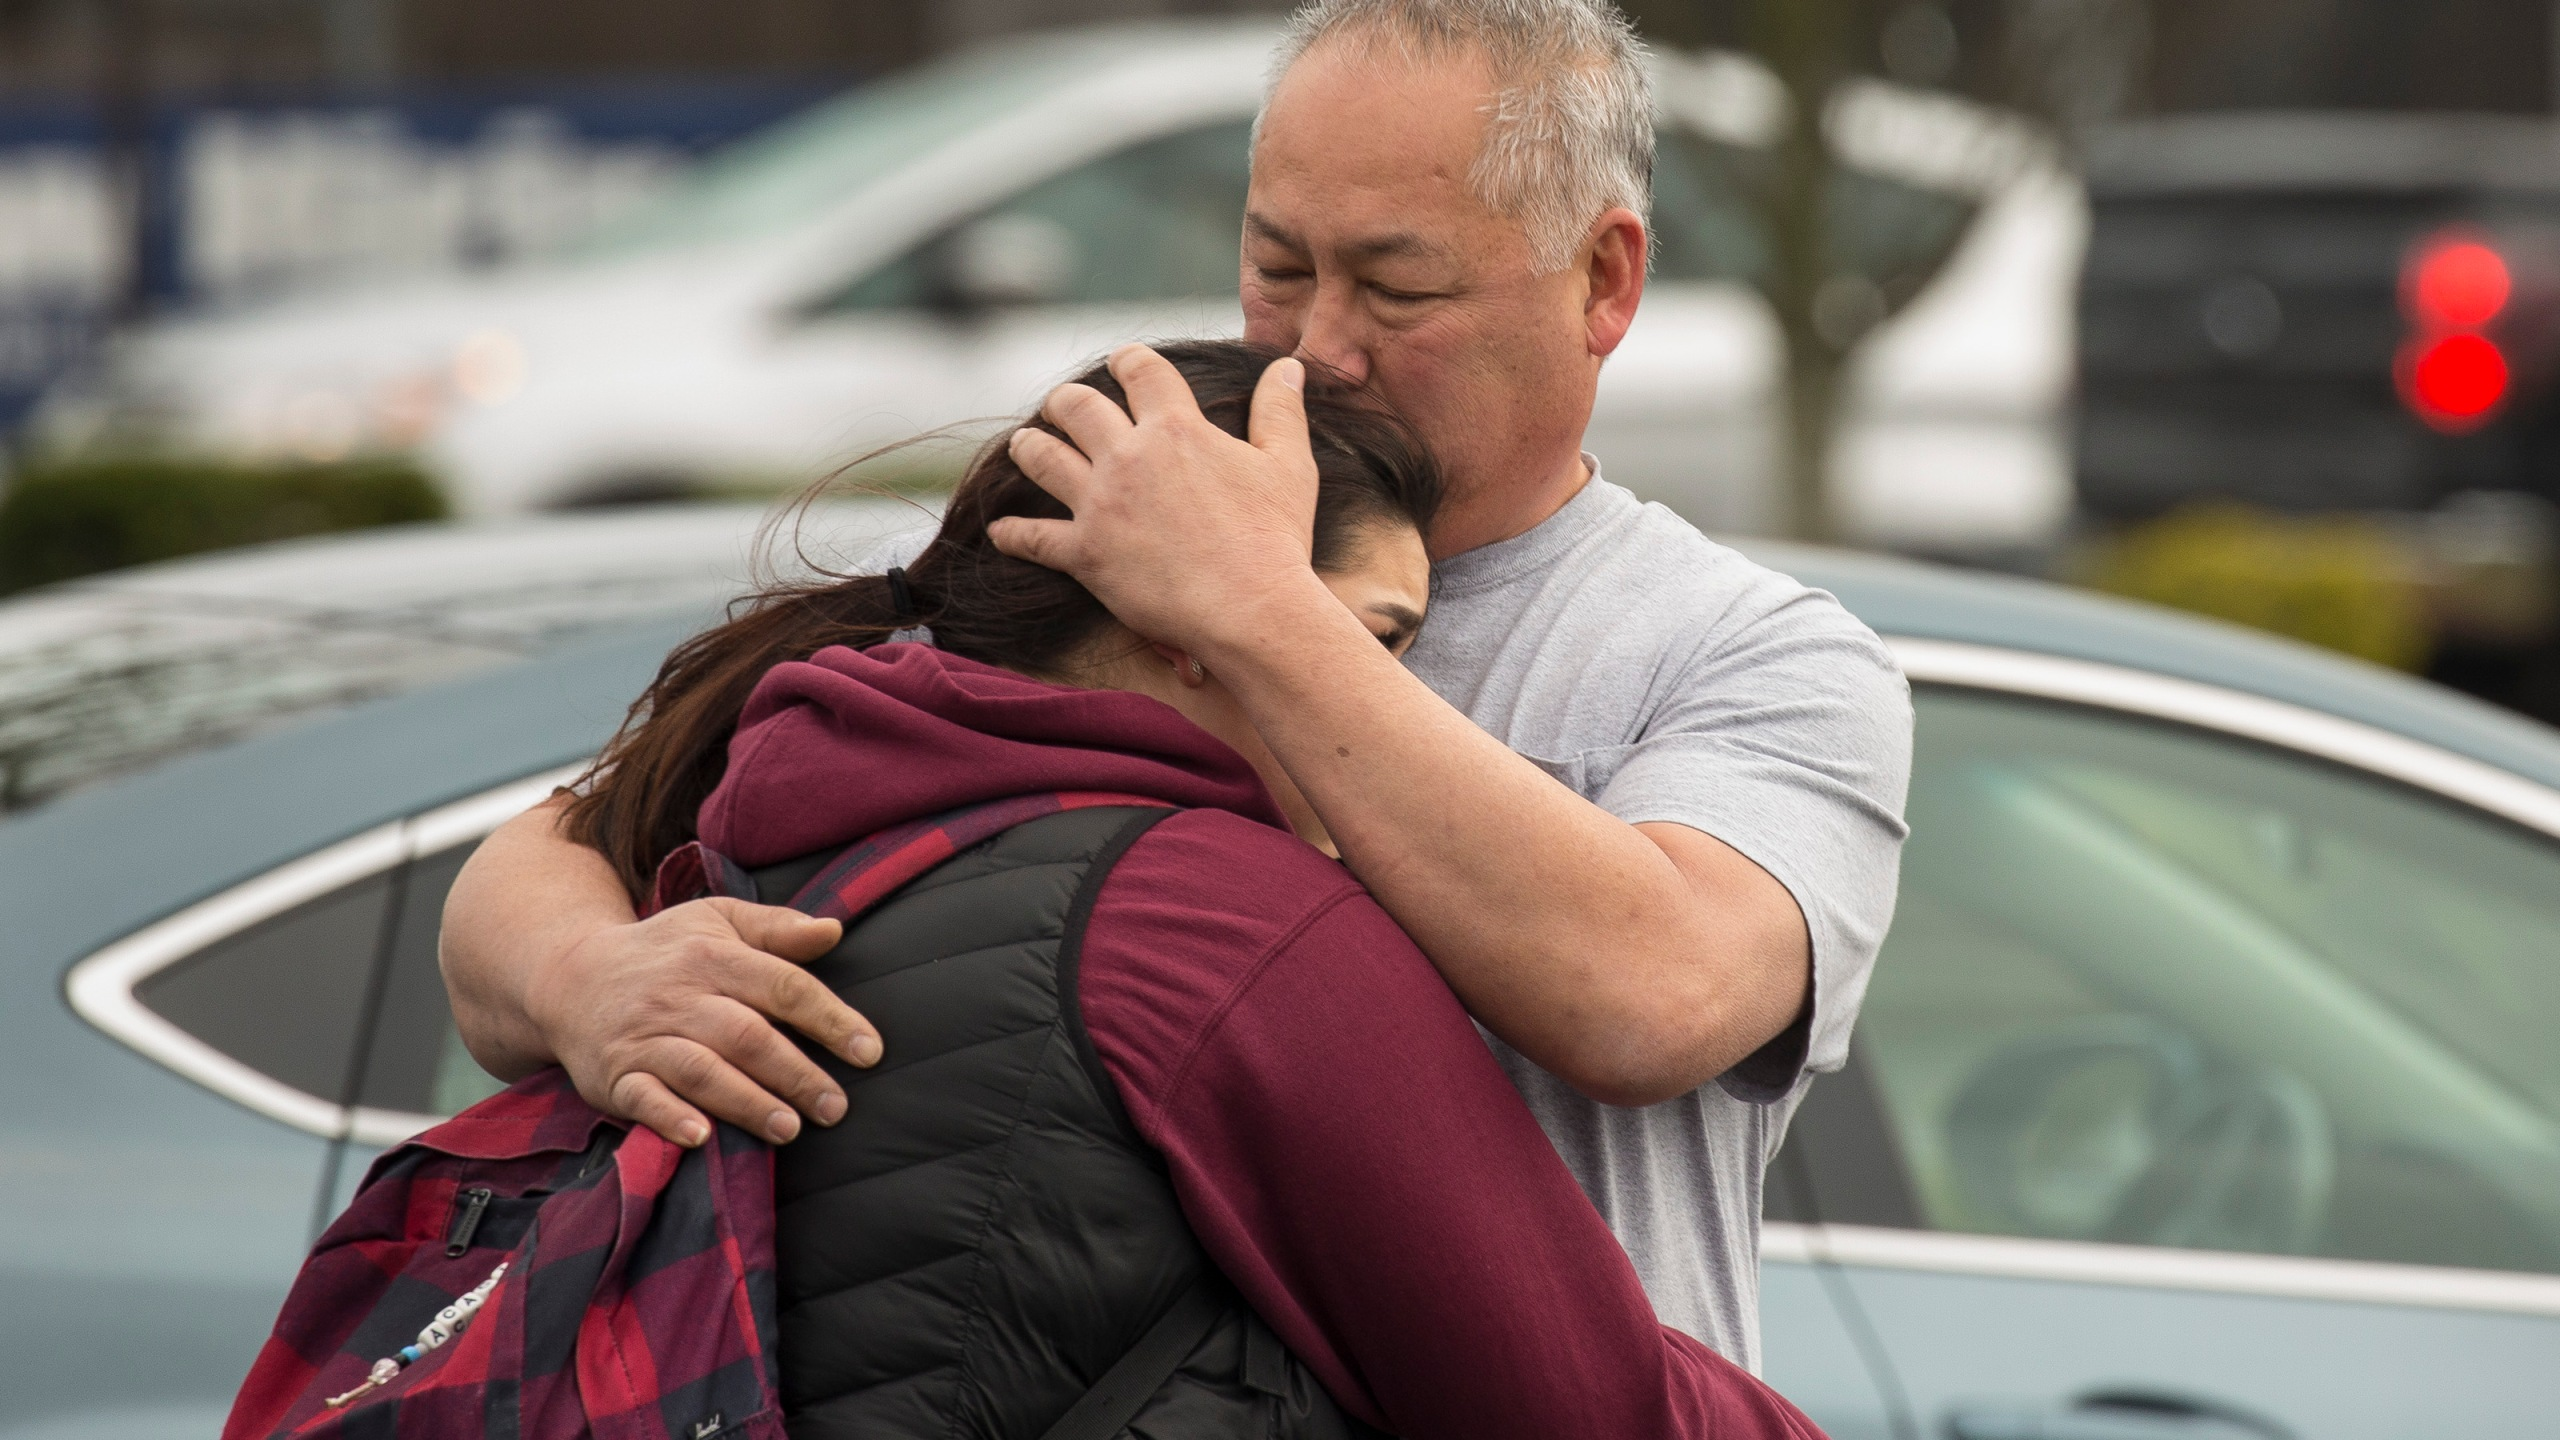 Kaihei Kim (right) comforts his daughter, Acacia Kim, 18, (left), a high school student that takes classes at Highline College, after a threat of an active shooter shut down campus at Highline College on Feb. 16, 2018, in Des Moines, Wash. Police found no evidence of a shooting despite students reporting that they heard gunfire. (Credit: David Ryder/Getty Images)